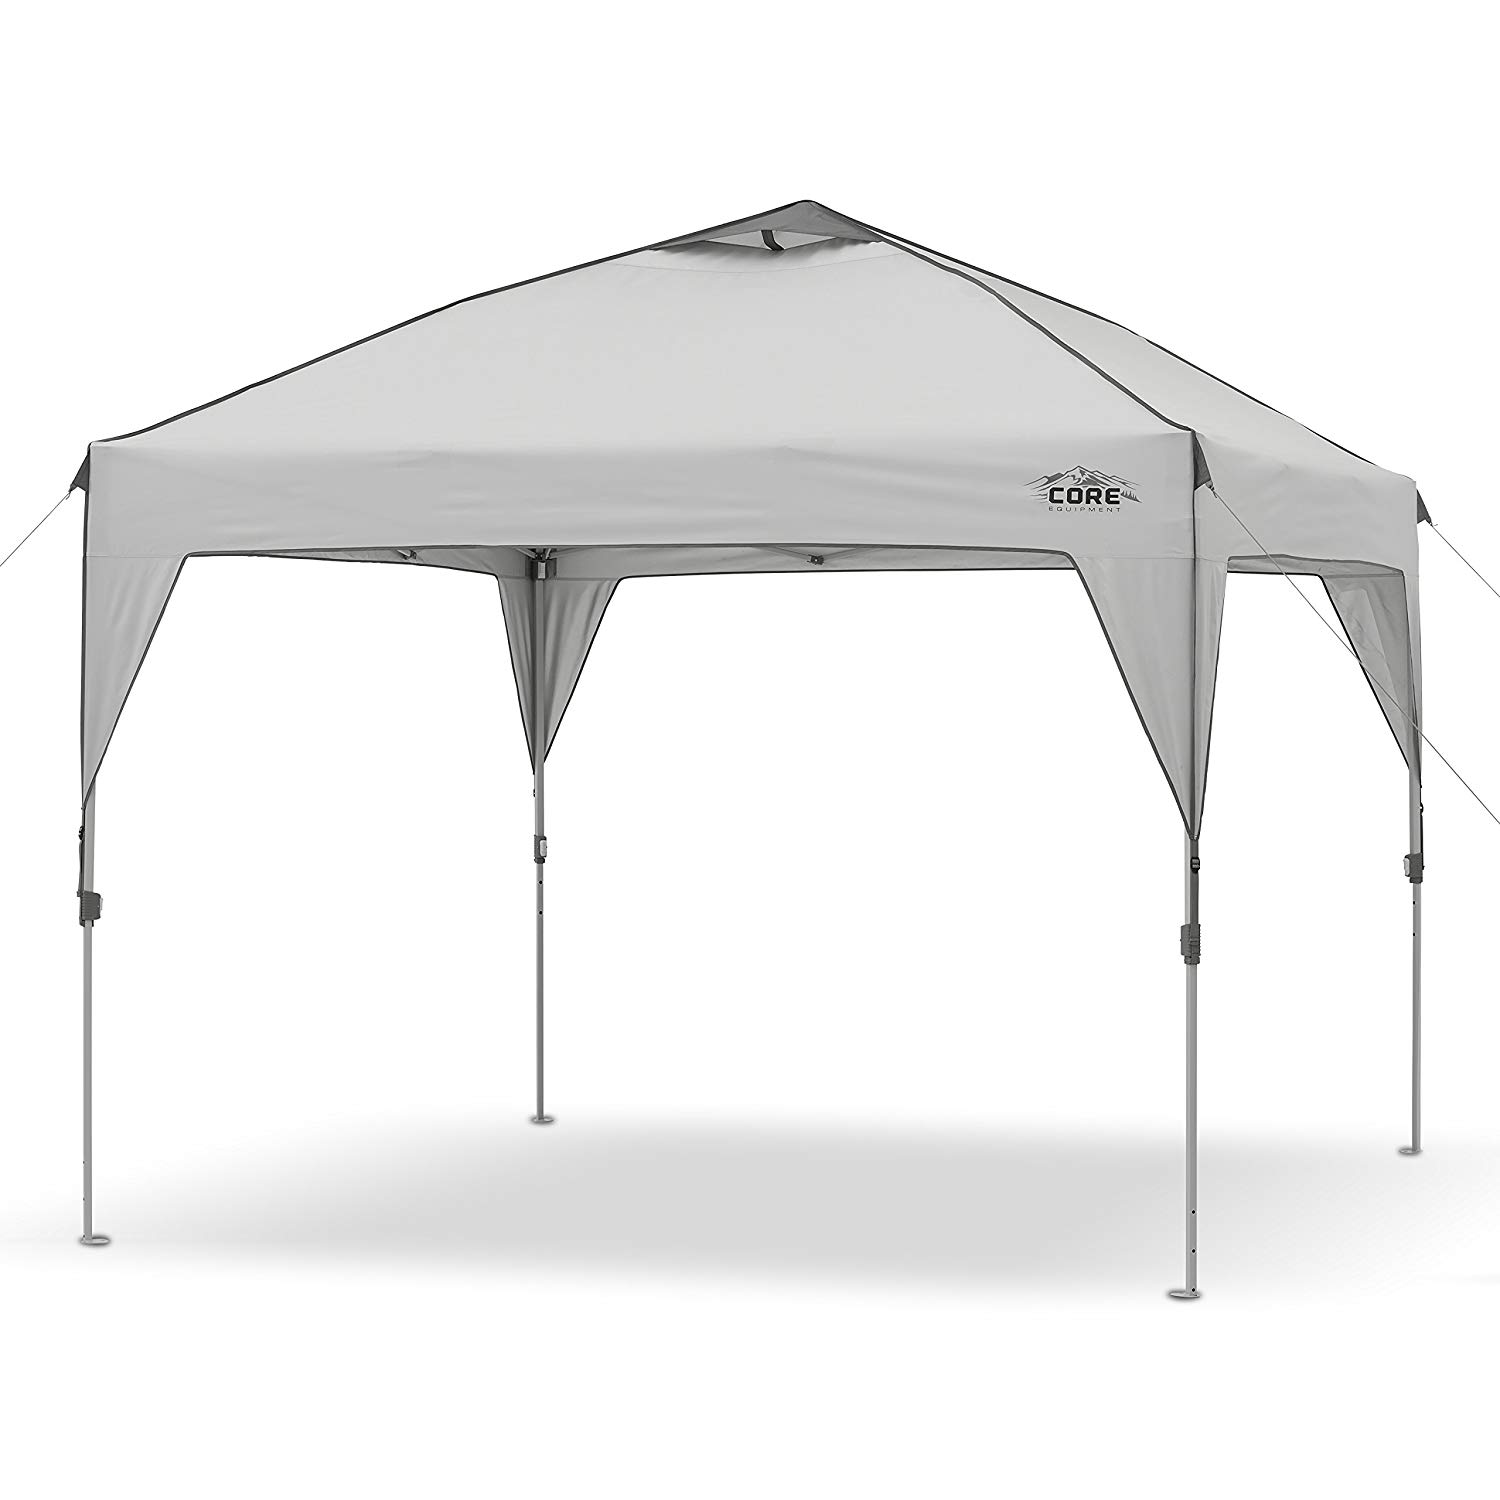 CORE 10 by 10 Instant Shelter Pop-up Canopy Tent